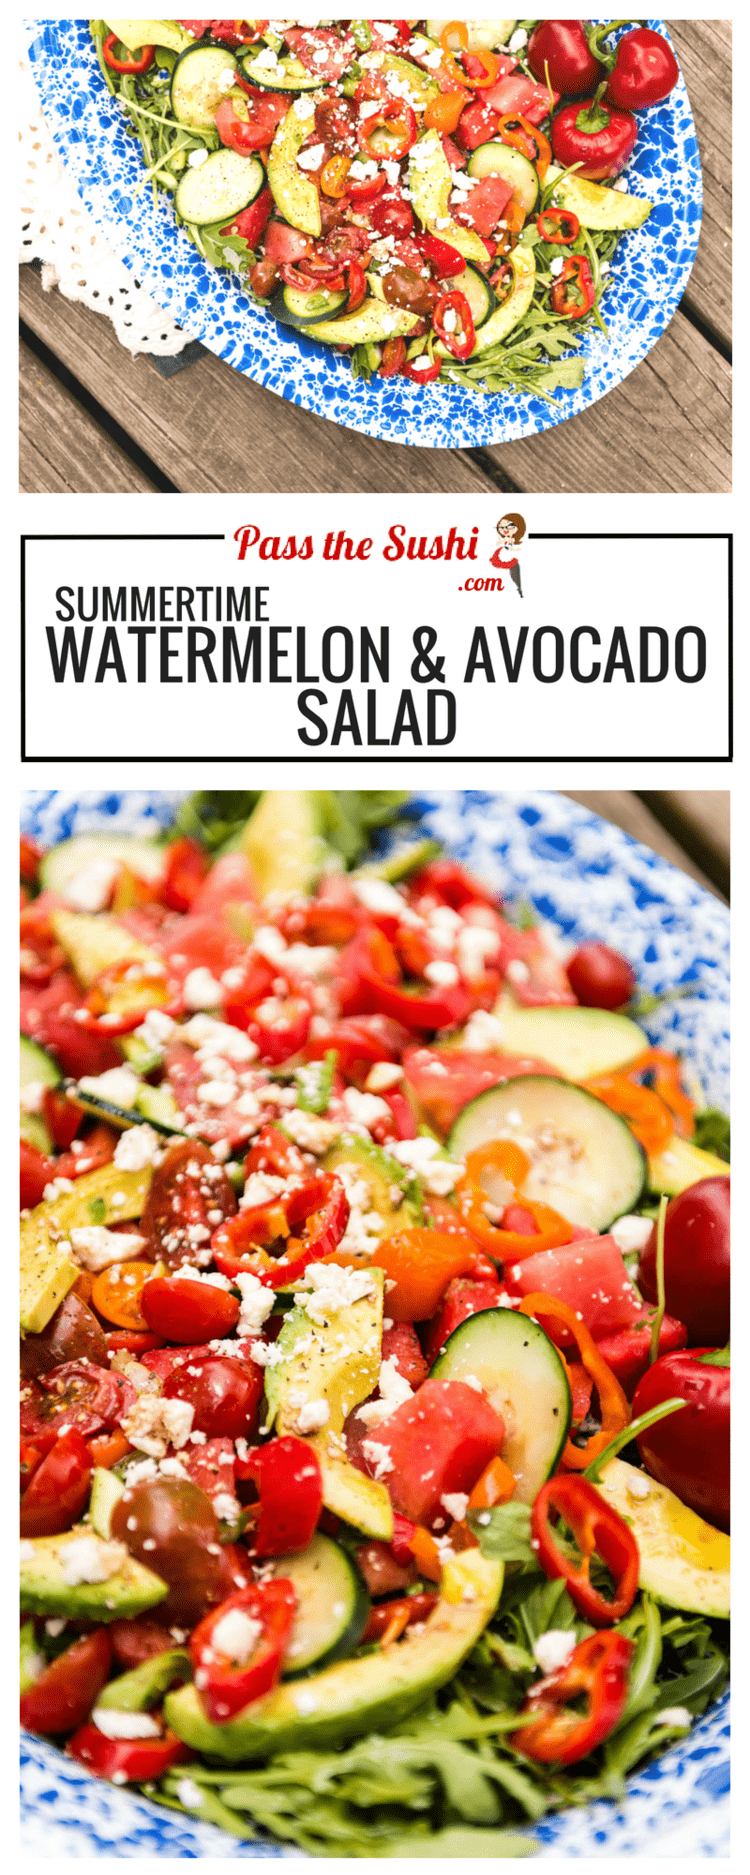 Summertime Watermelon Avocado Salad Recipe - Kita Roberts PasstheSushi